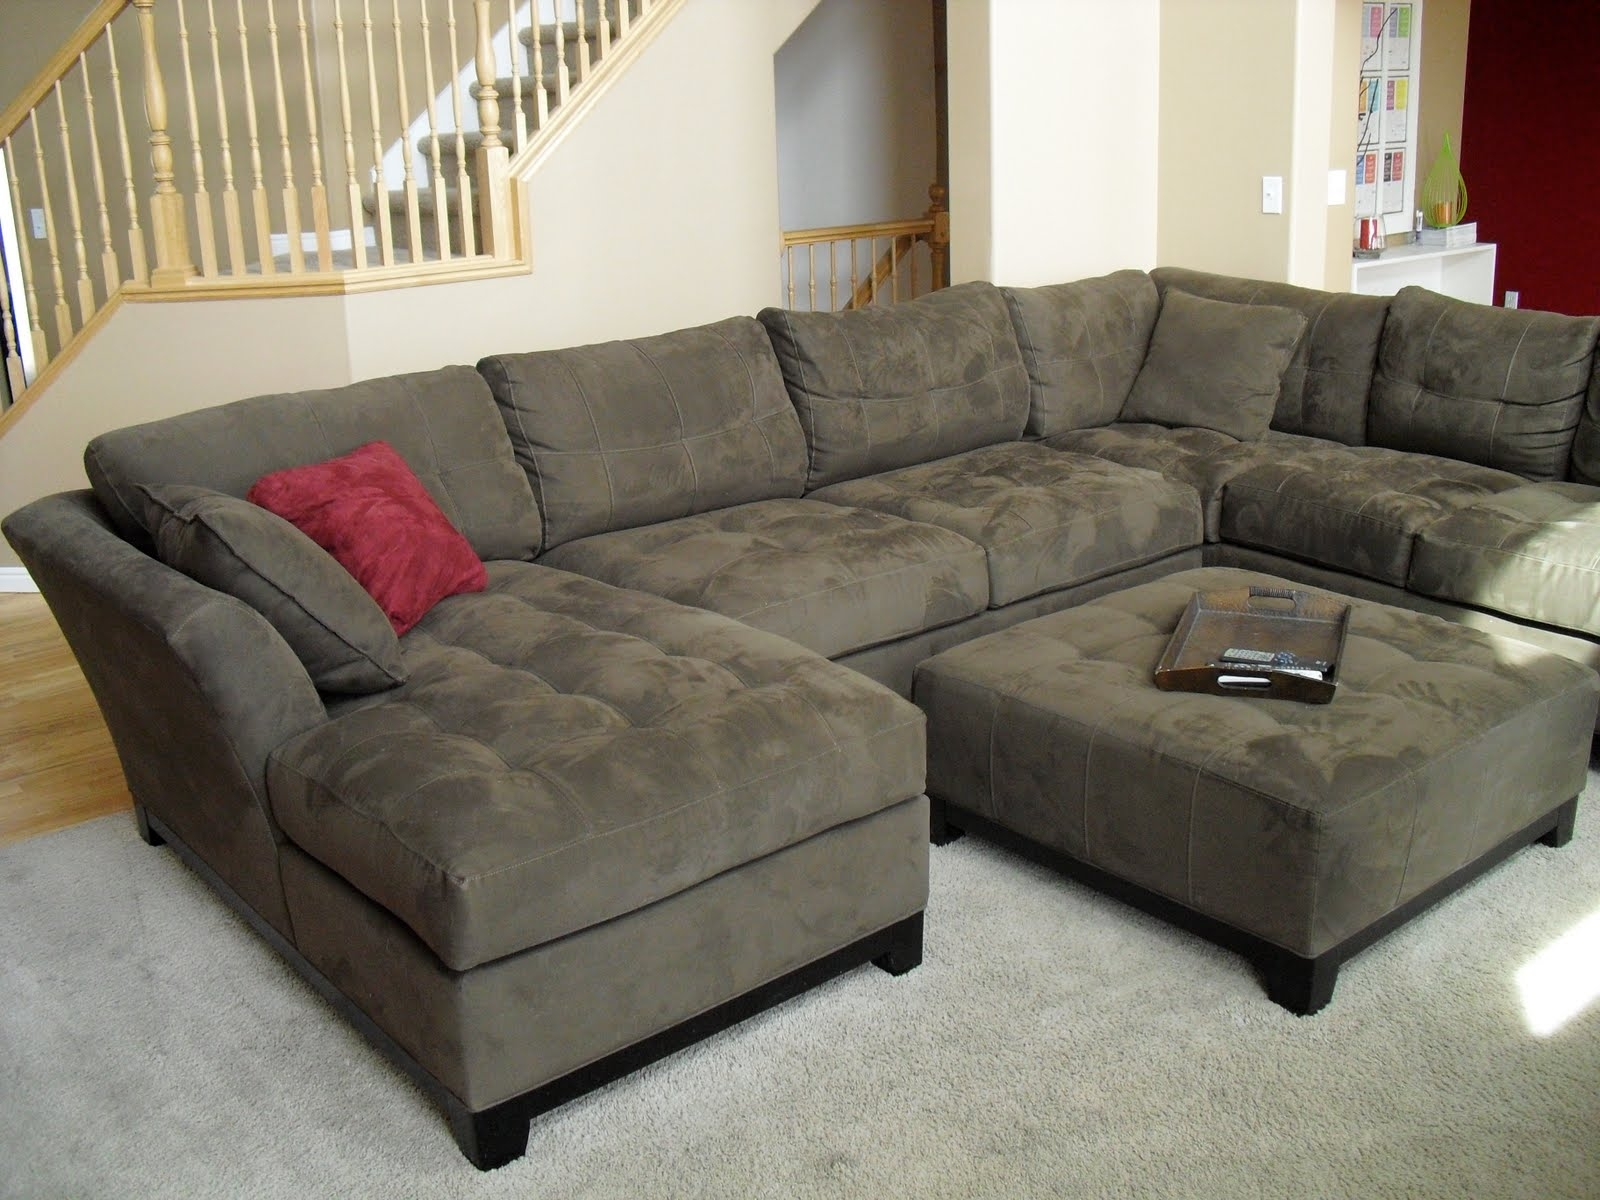 Sofas Center Furniture Perfect Living Ideas With Deep Seated Pertaining To Wide Sofa Chairs (Image 12 of 15)